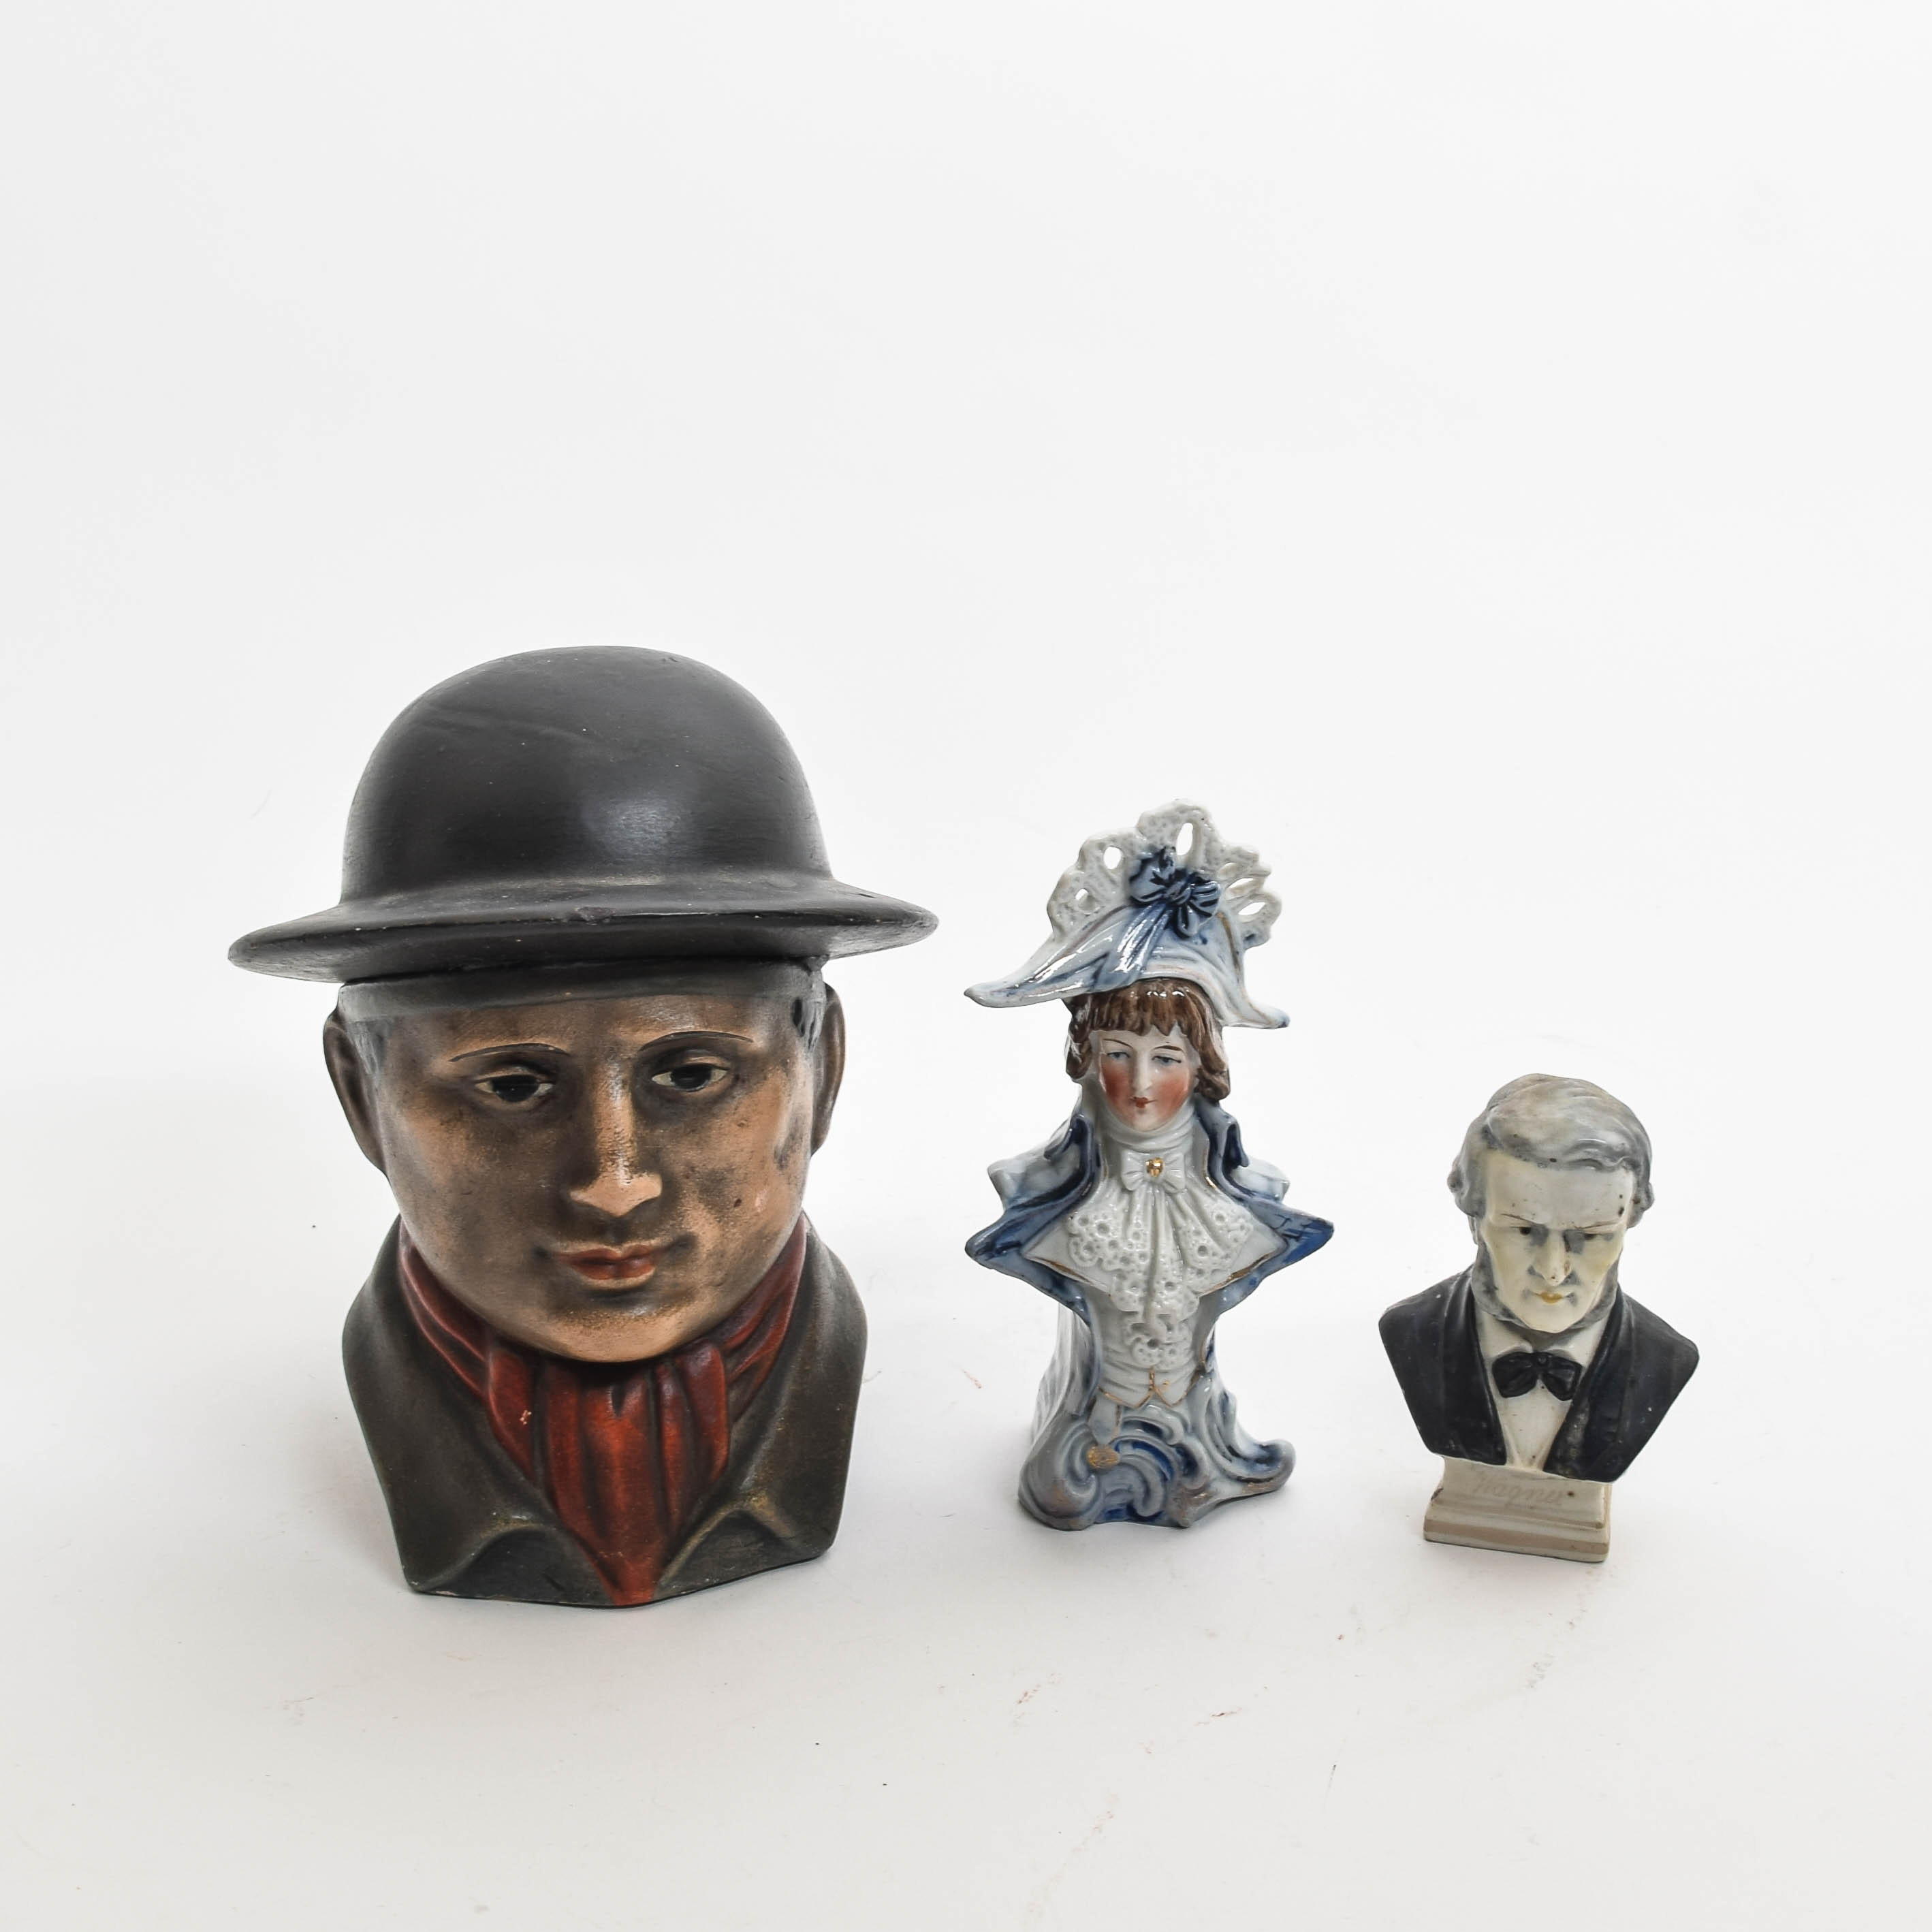 Collection of Vintage Miniature Busts